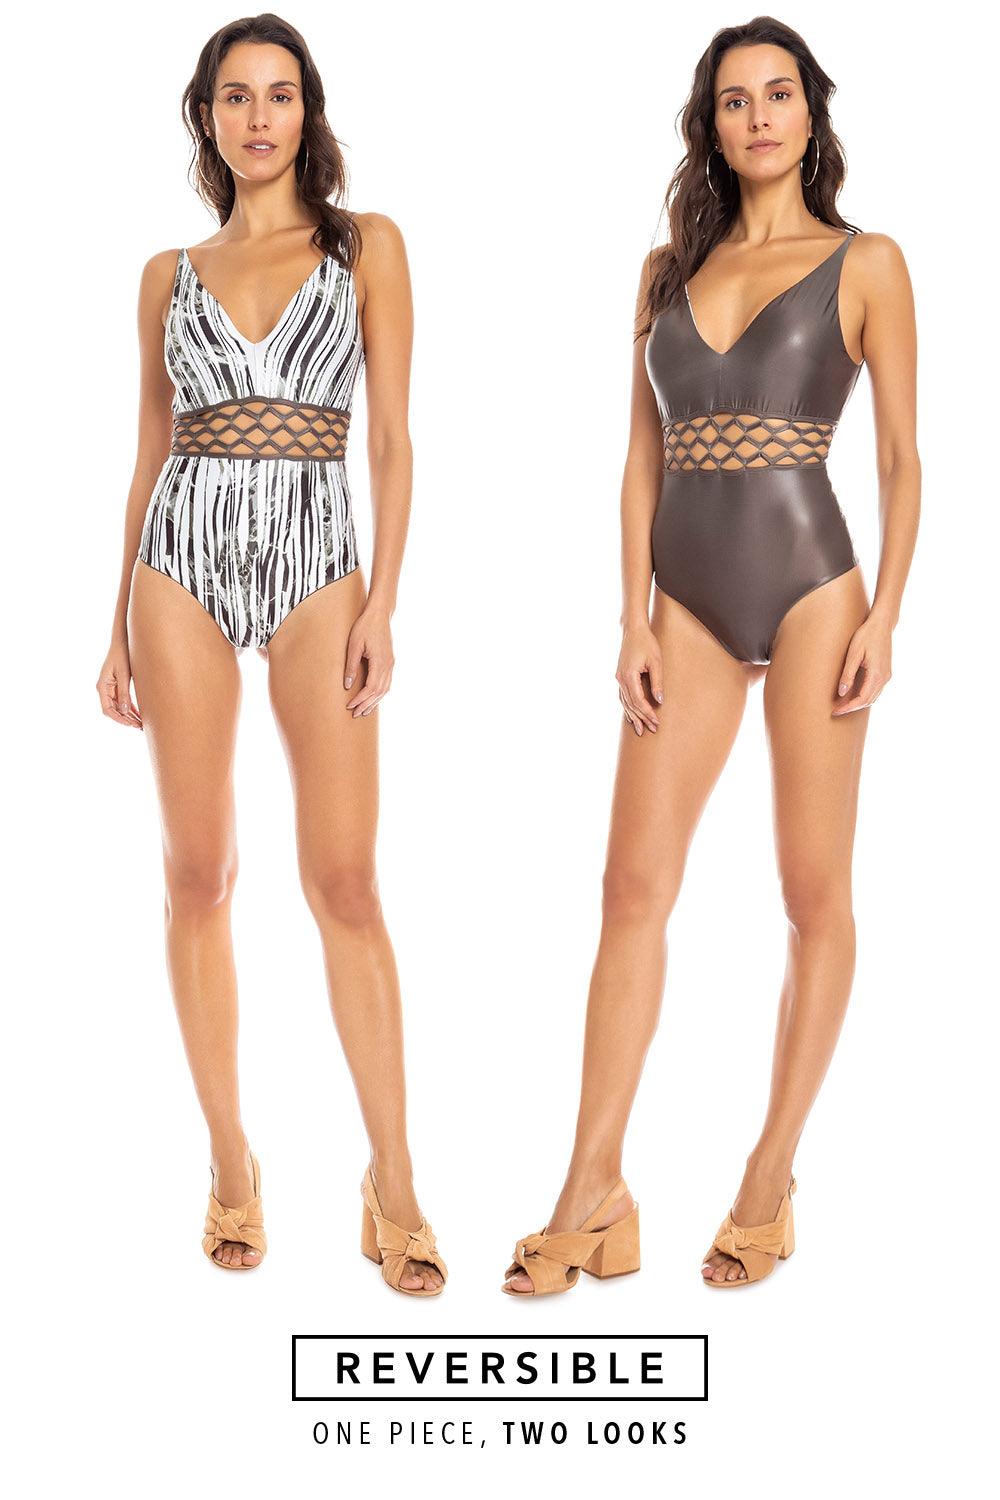 Rhythmic Reversible One Piece